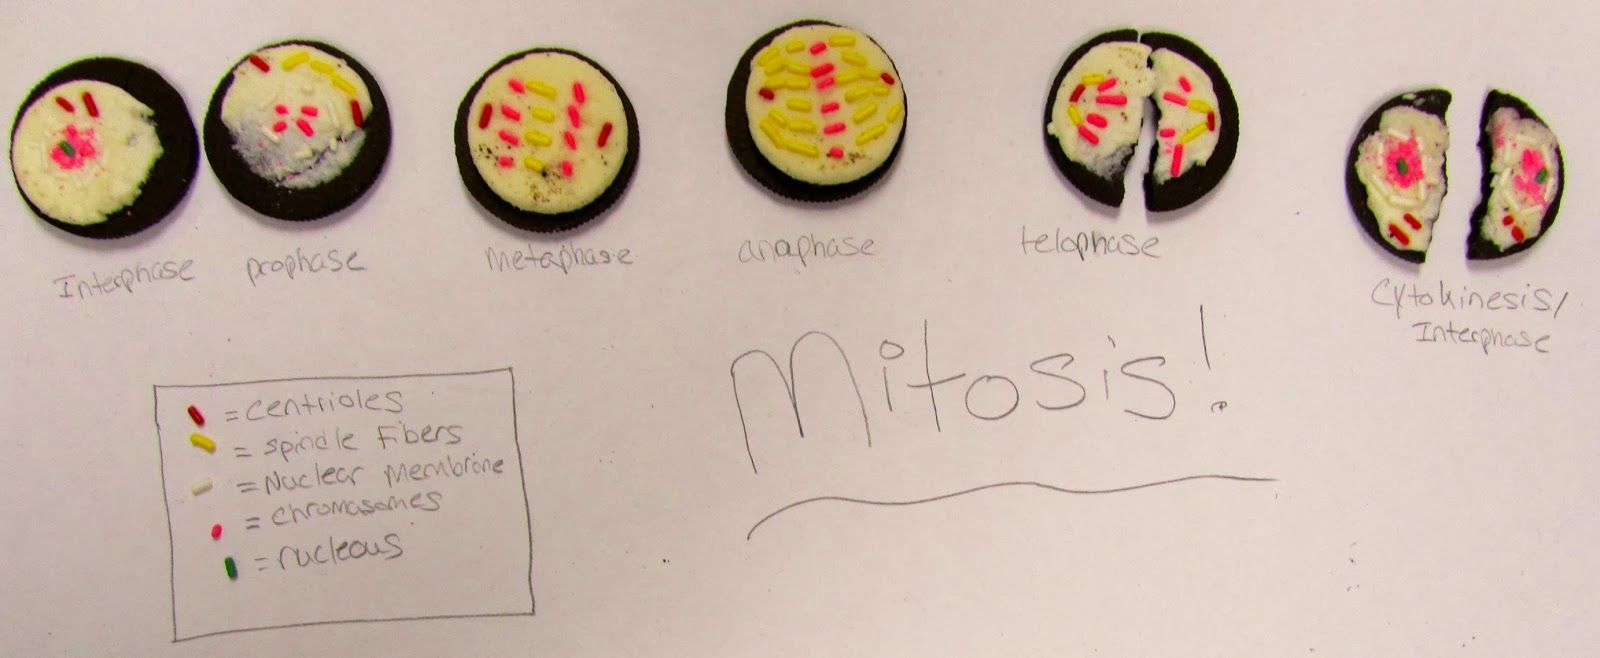 Oreo Mitosis Mitosis Biology For Kids Biology Projects